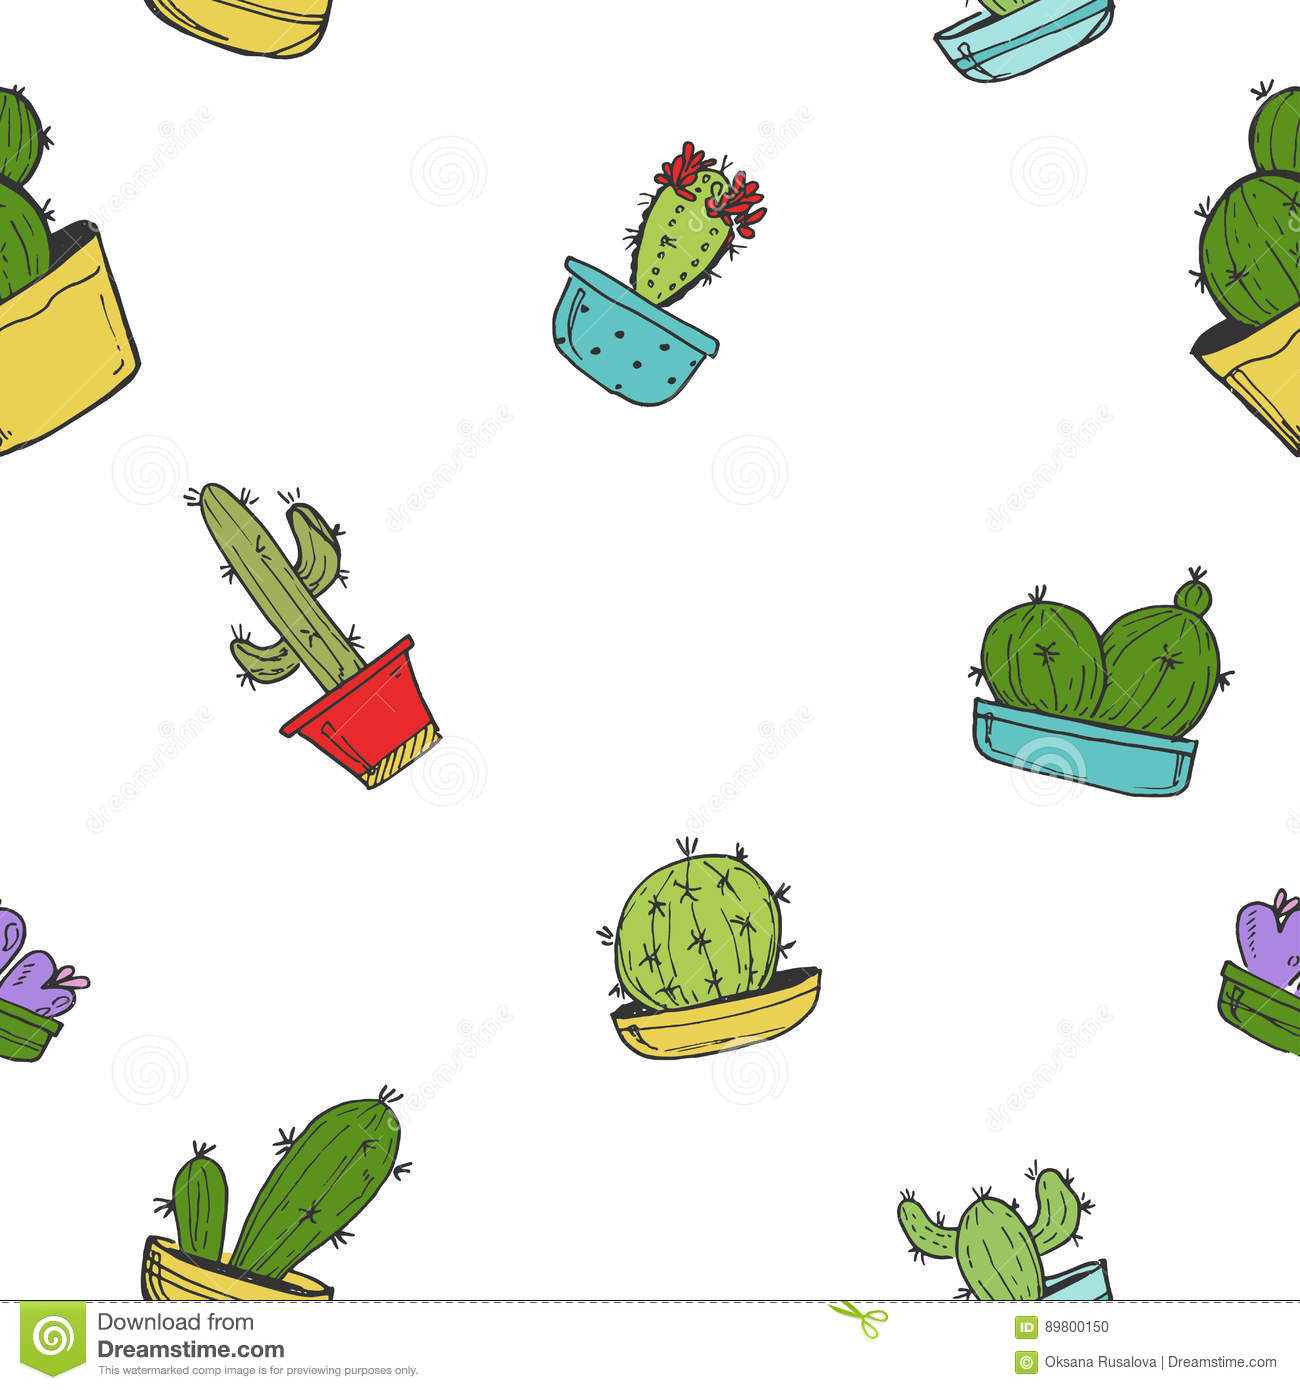 Draw So Cute Cactus Family